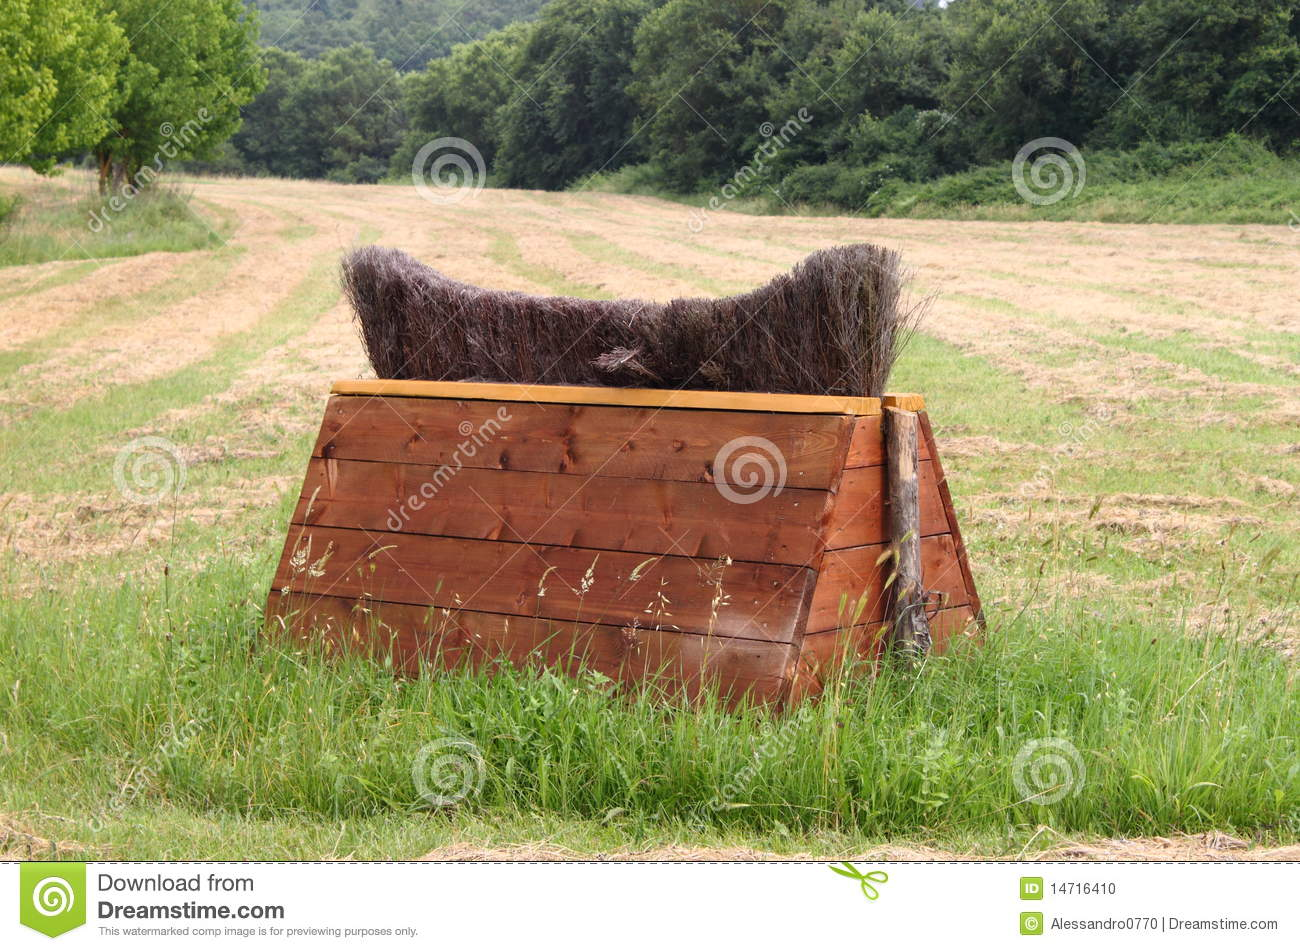 Download Equitation obstacle stock photo. Image of riding, object - 14716410